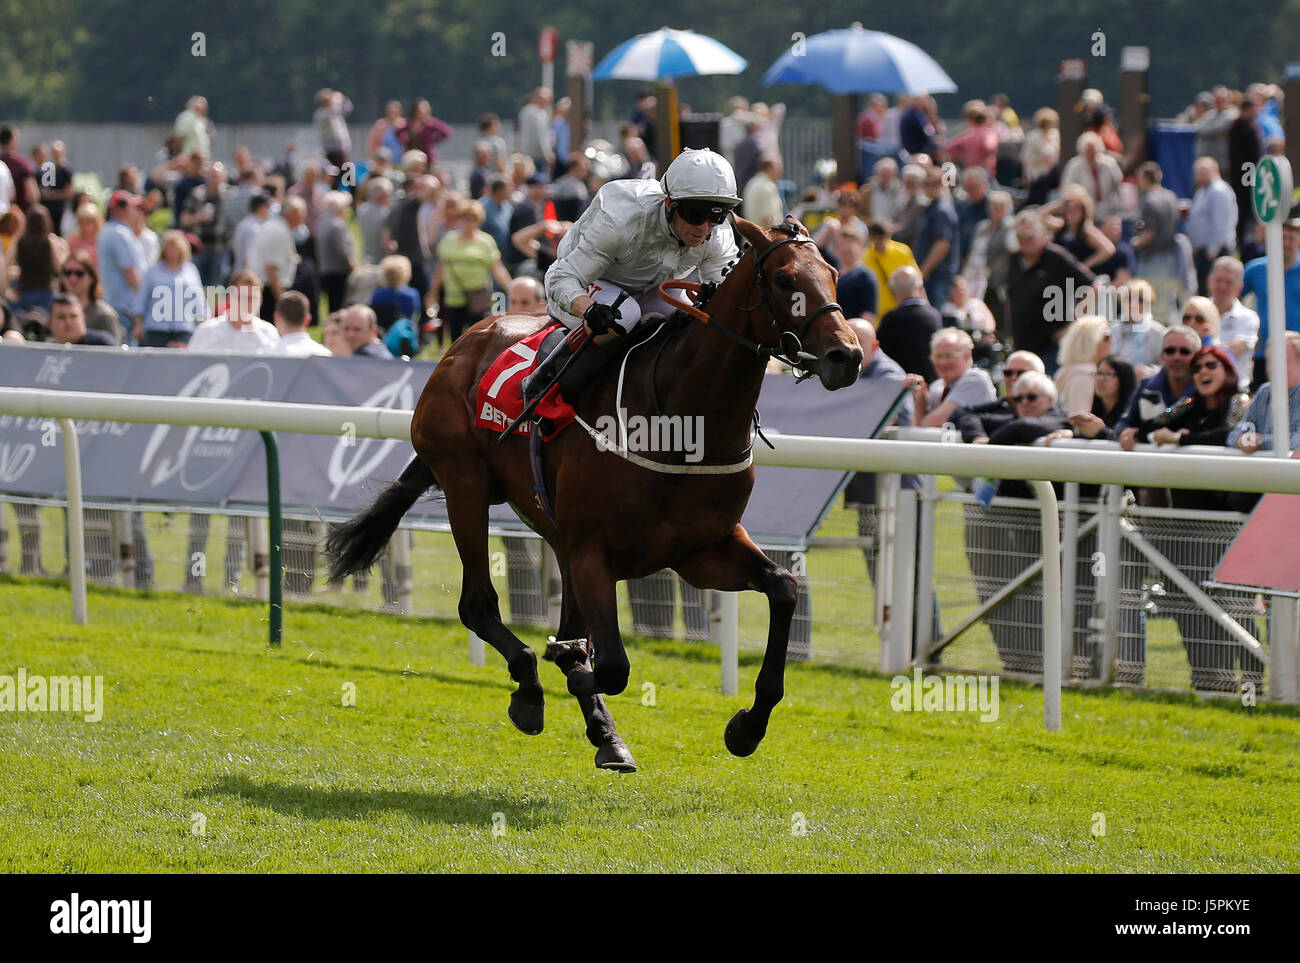 York, UK. 18th May, 2017. Permian Ridden By Franny Norton Wins The The Betfred Dante Stakes Dante Festival 2017, - Stock Image